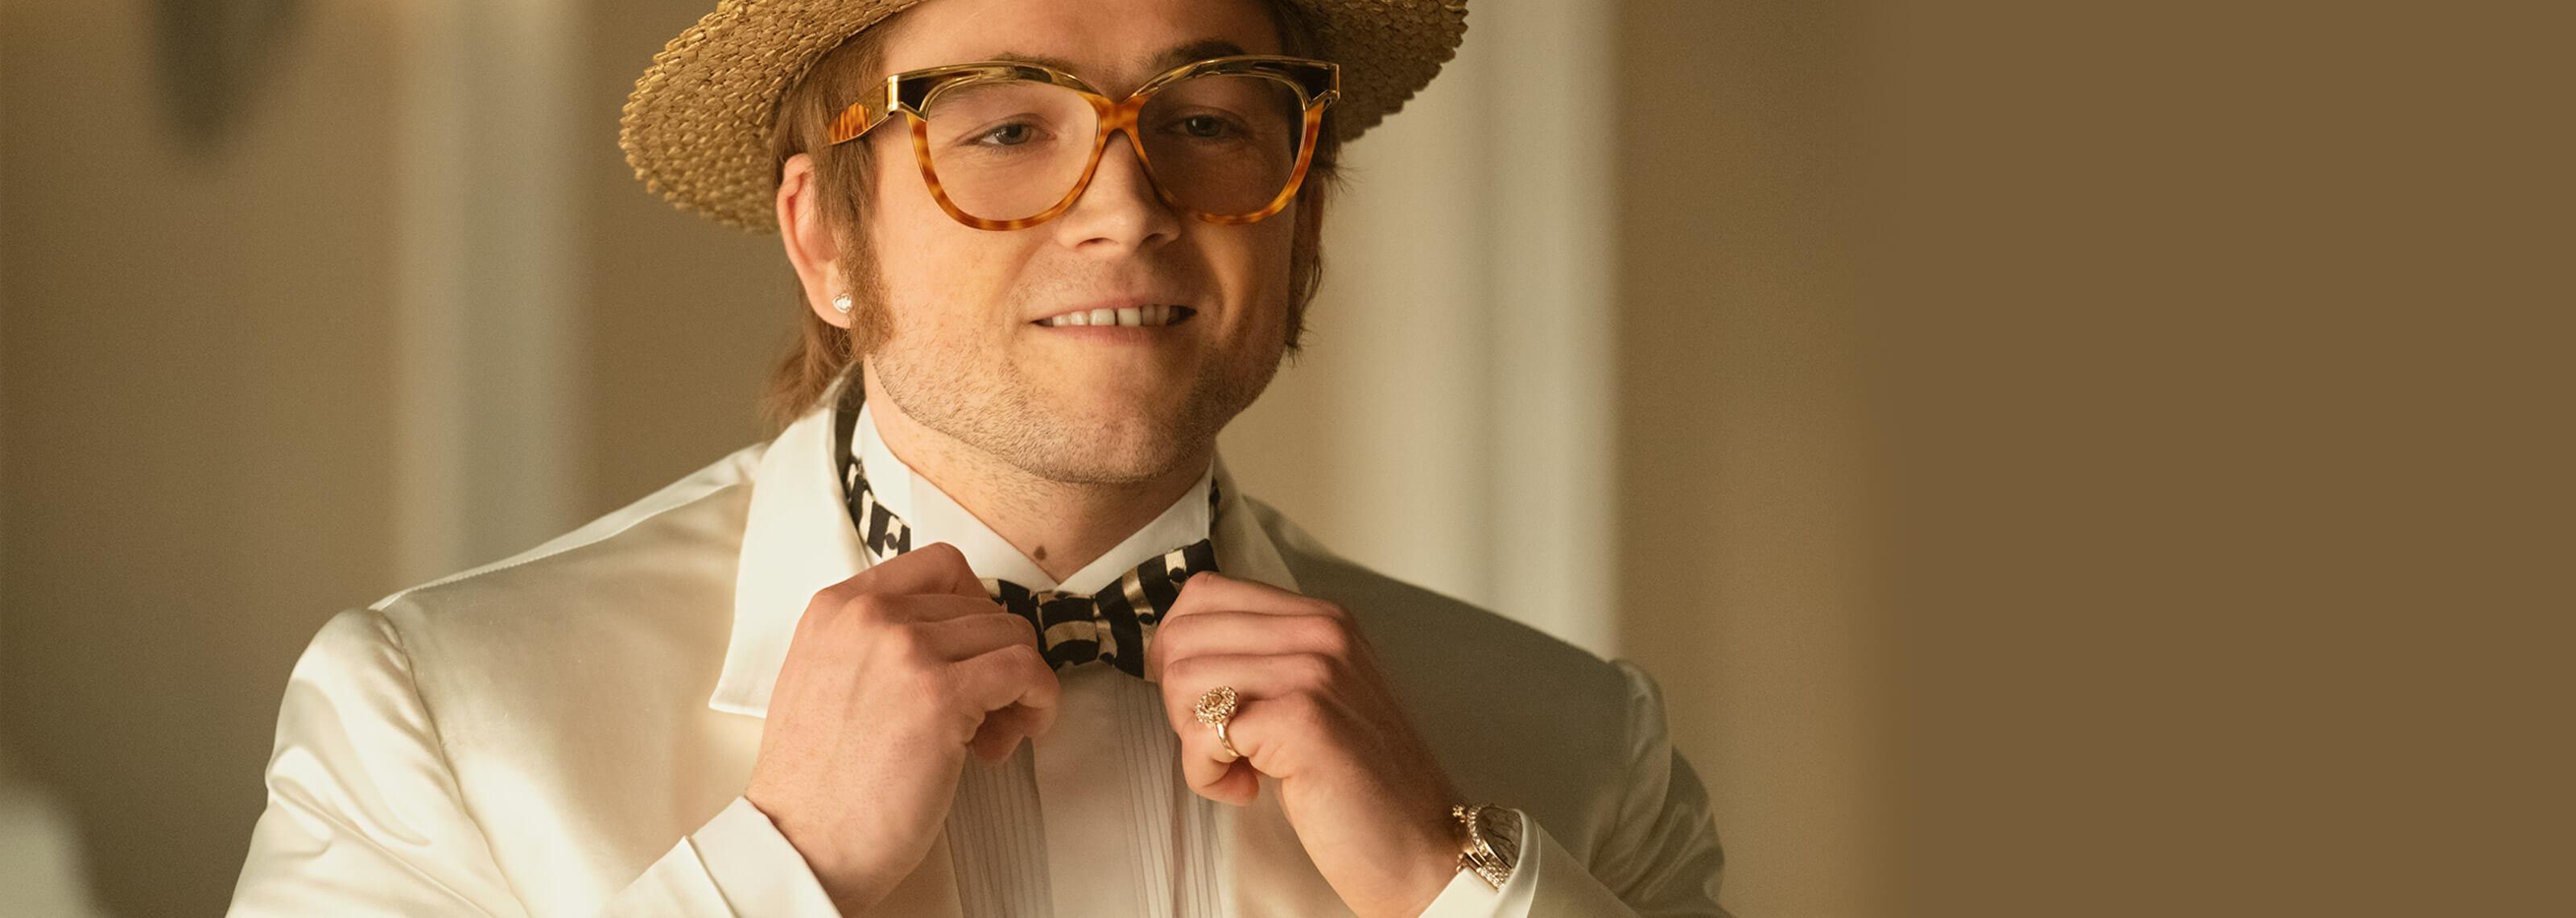 Chopard creations featured in Film Rocketman